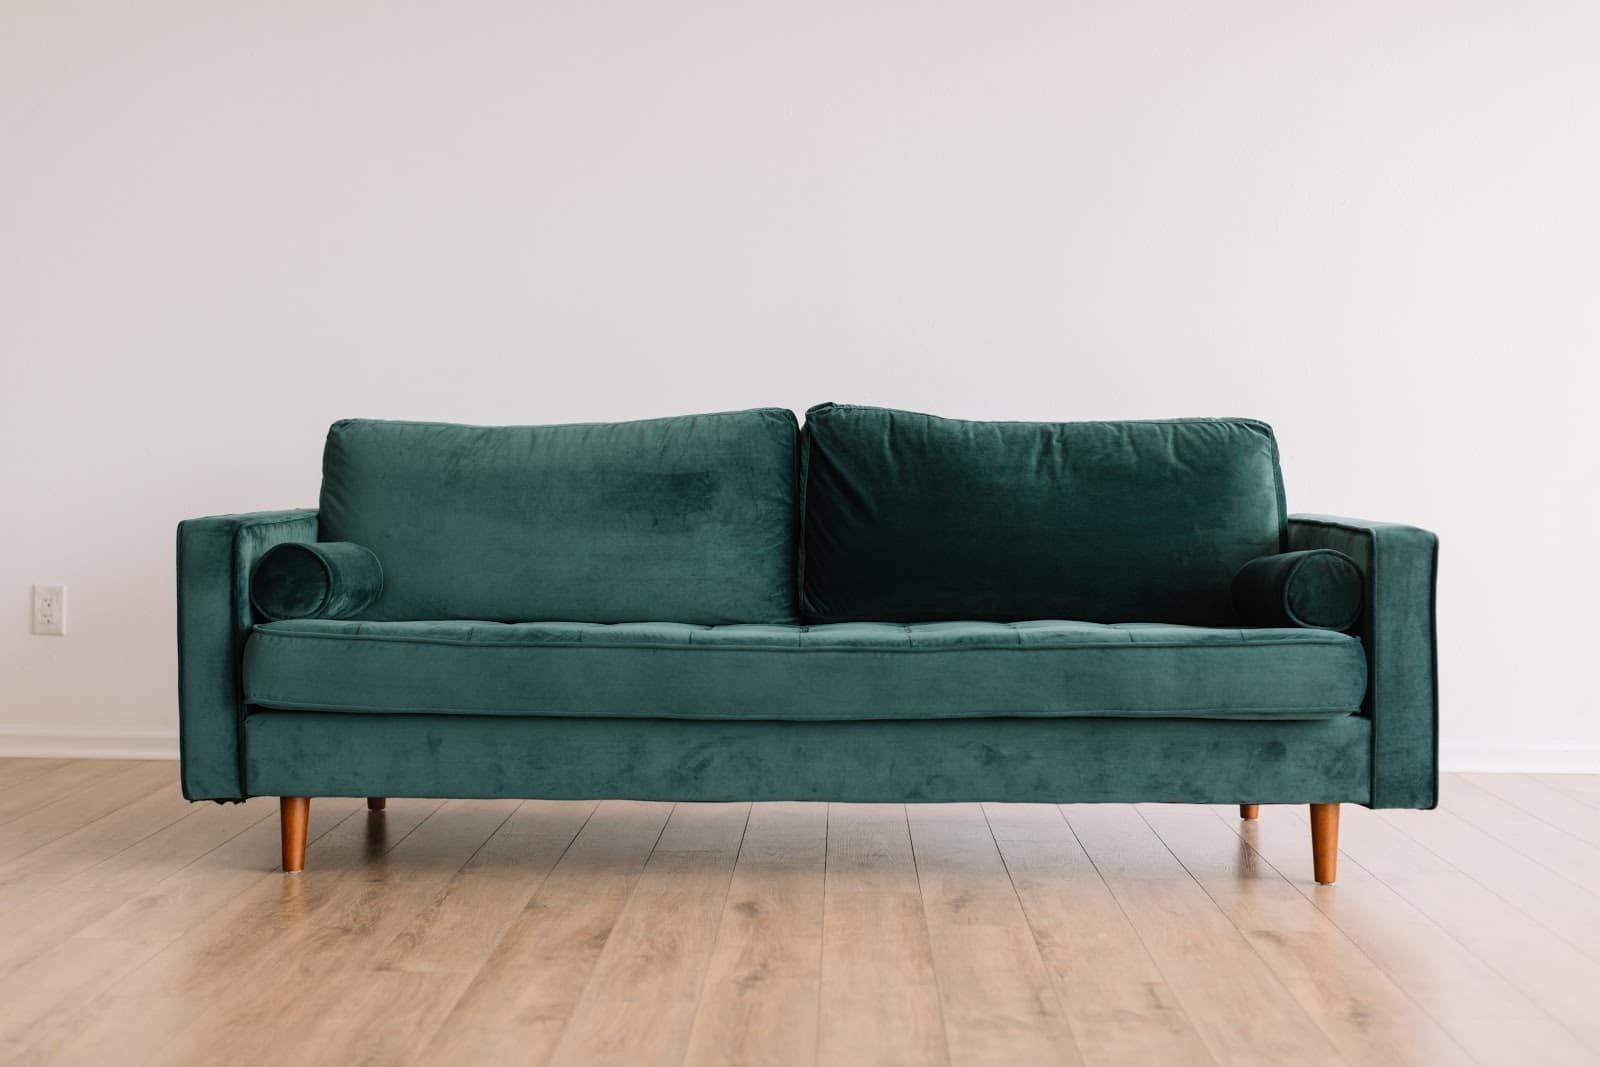 A velvet couch that could be sold on AptDeco